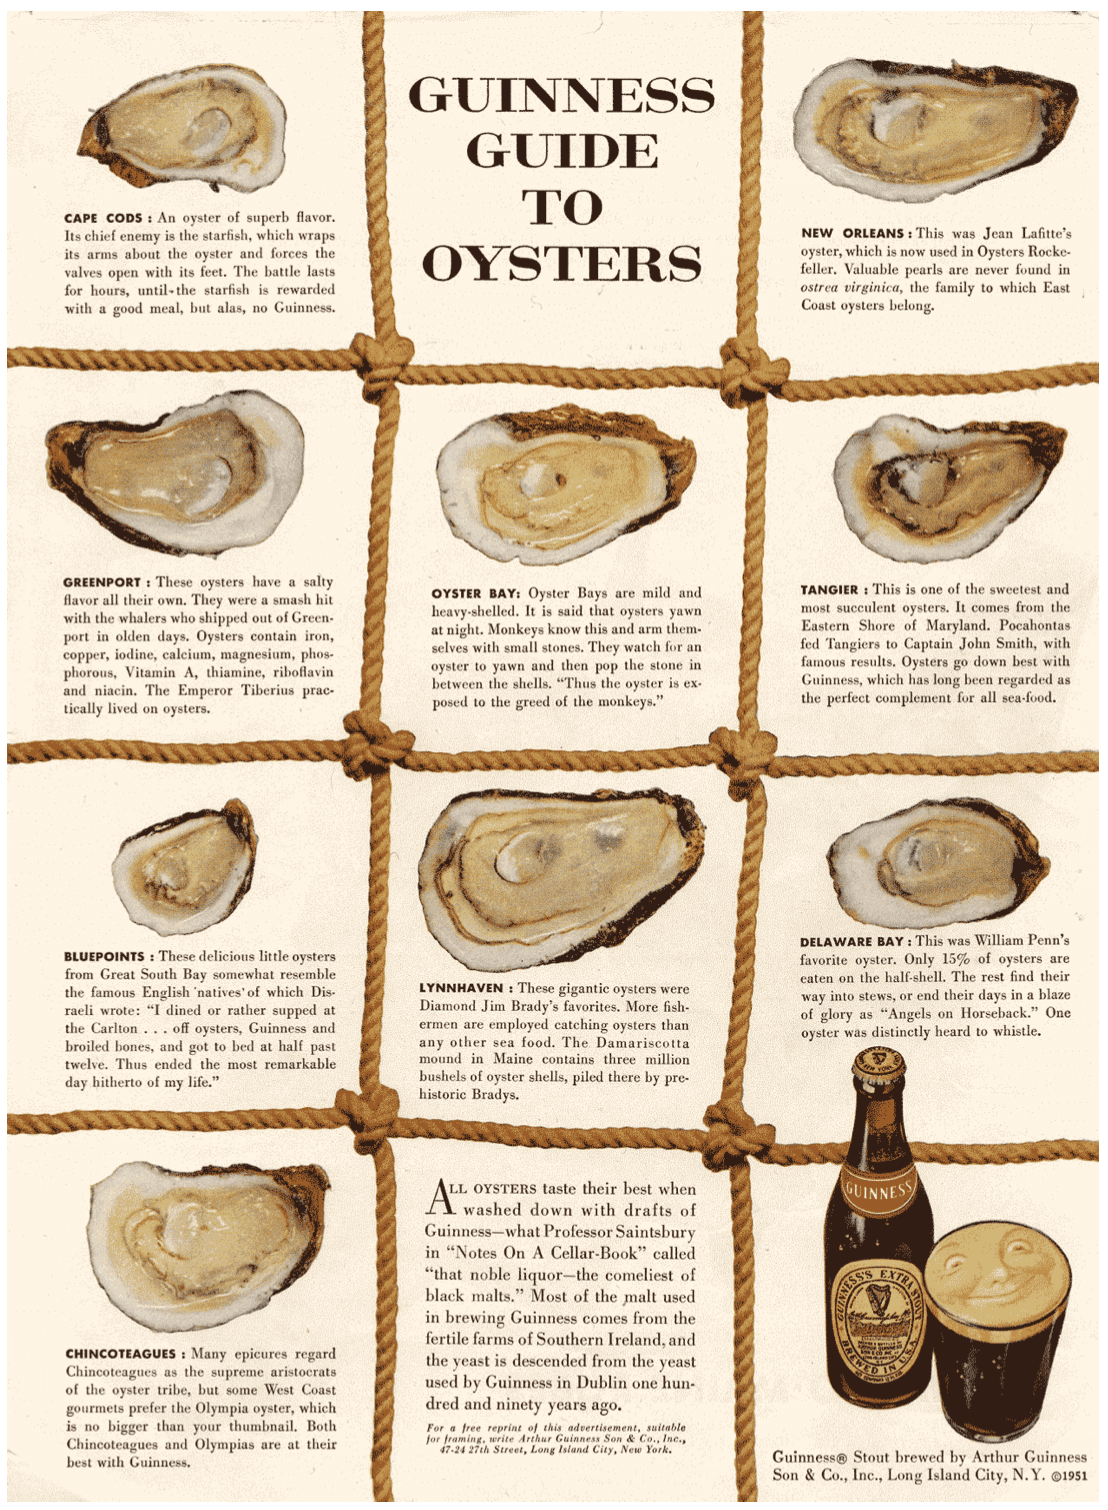 Guinness strategy in a guide to oysters